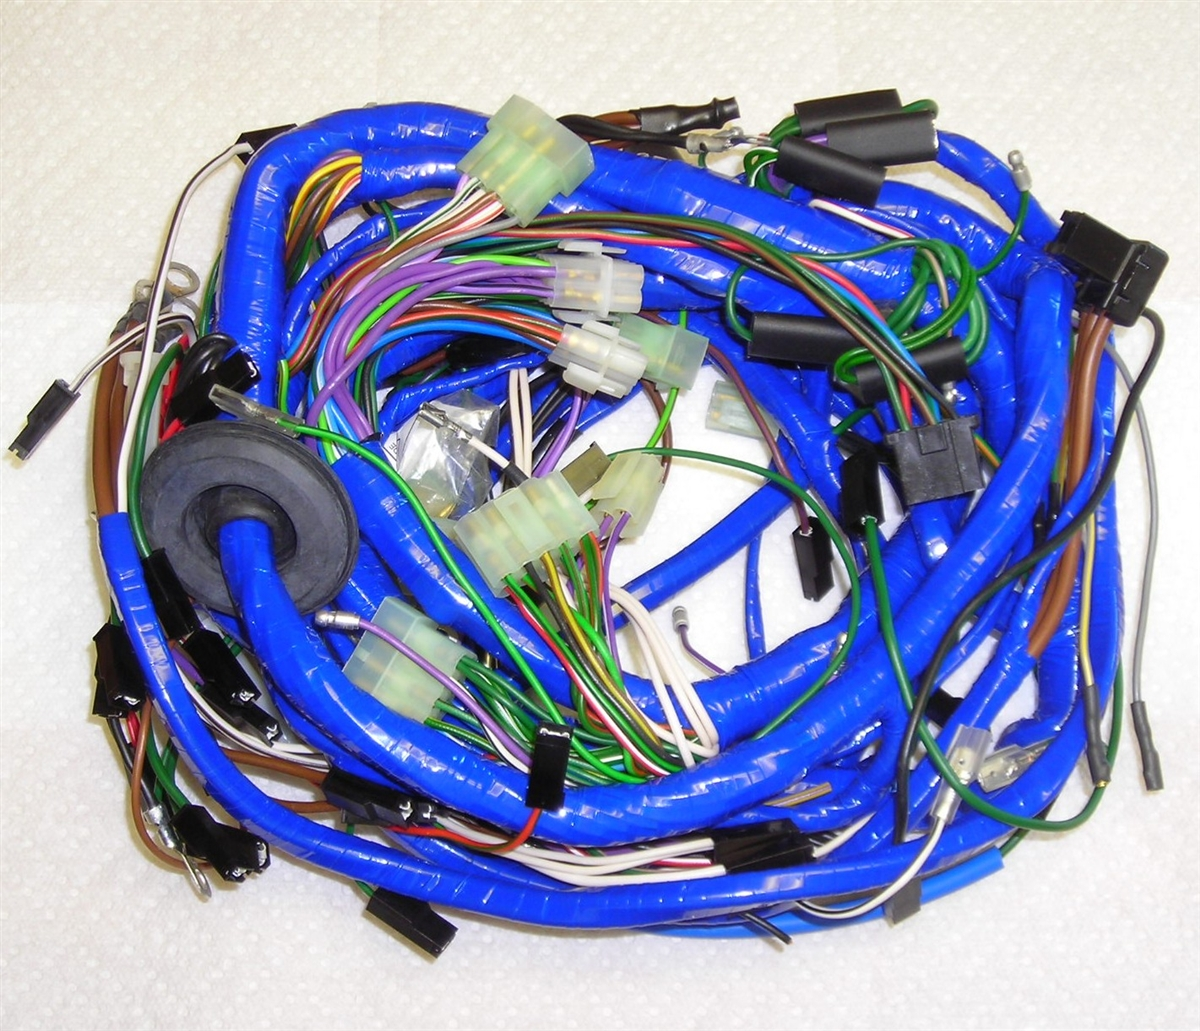 522 2?1368181909 mgb 1980 main wiring harness (522) mgb wiring harness at panicattacktreatment.co